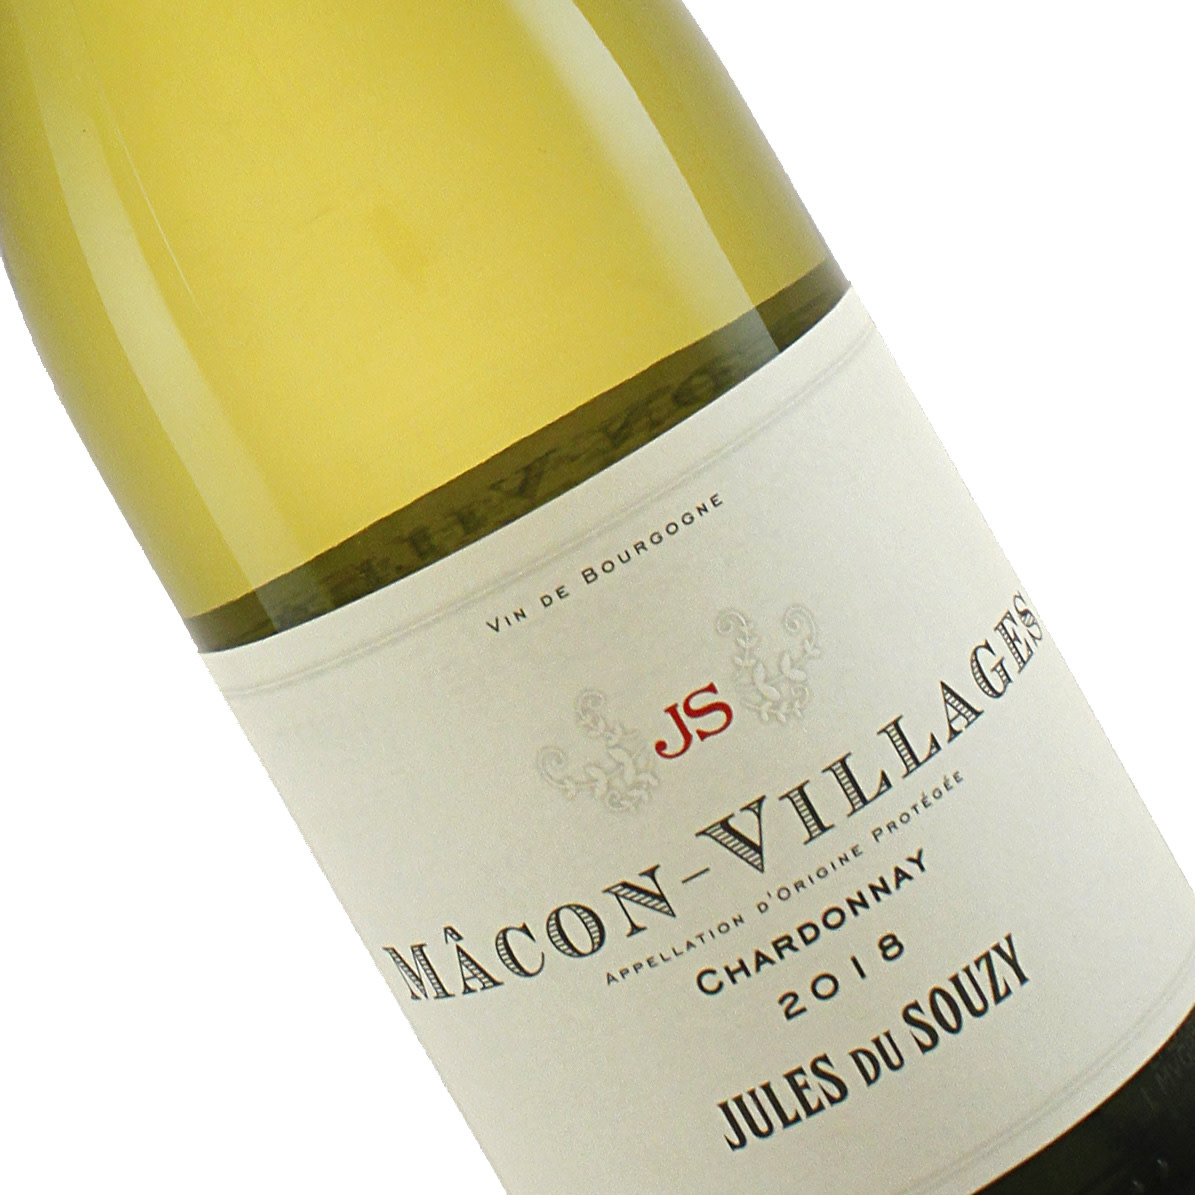 Jules Du Souzy 2018 Chardonnay Macon-Villages